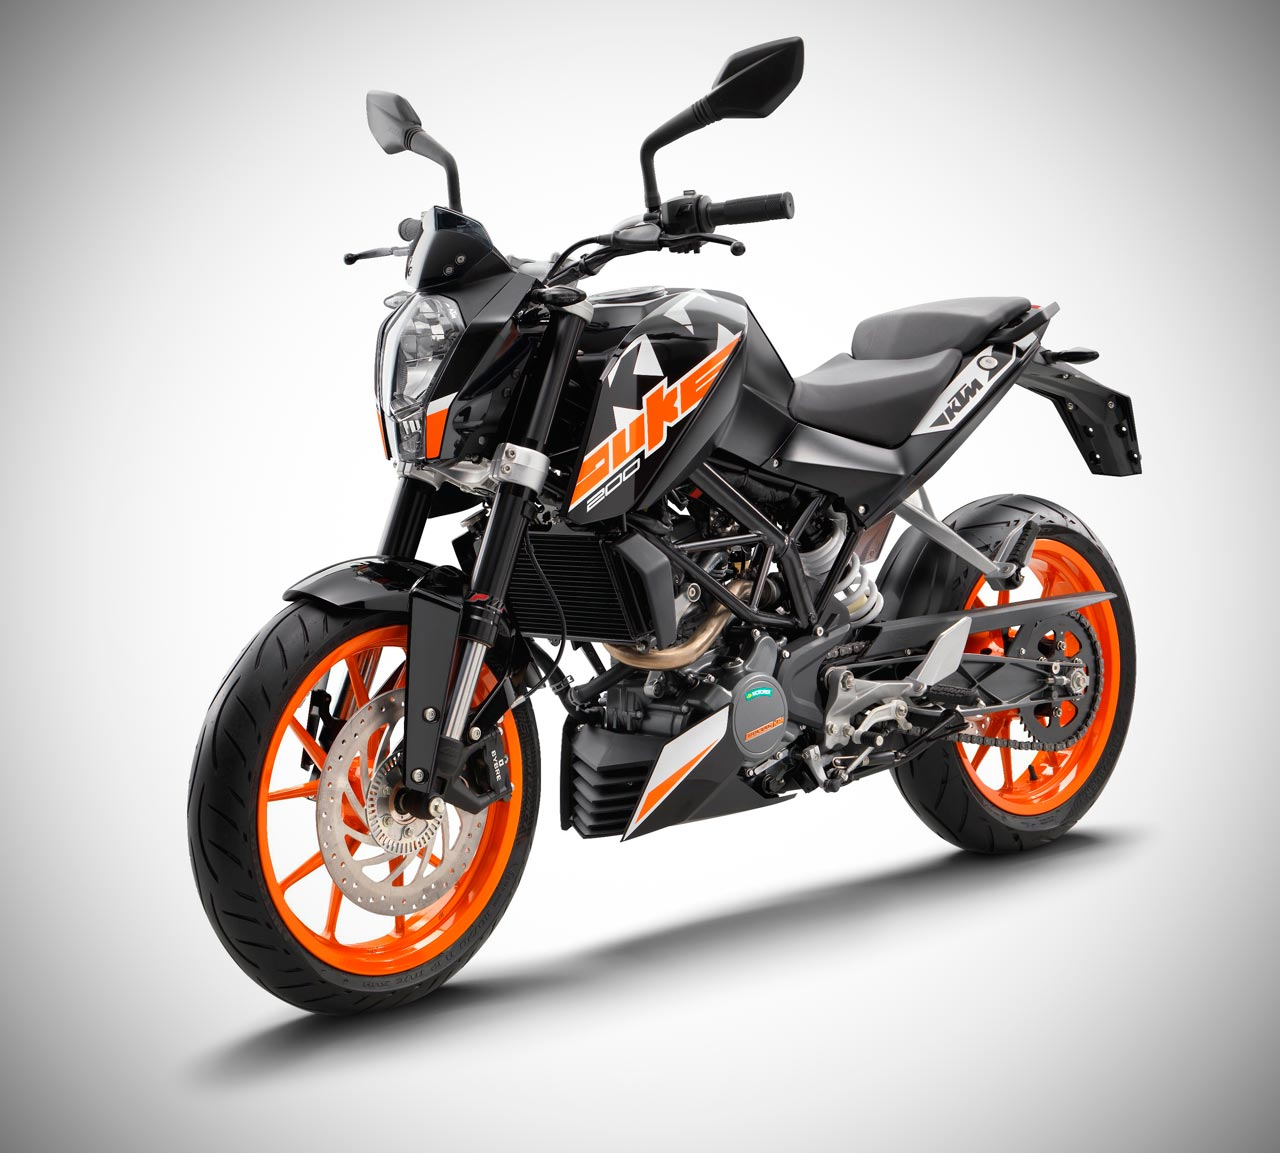 2017 ktm duke 200 launched in india at inr lakhs autobics. Black Bedroom Furniture Sets. Home Design Ideas